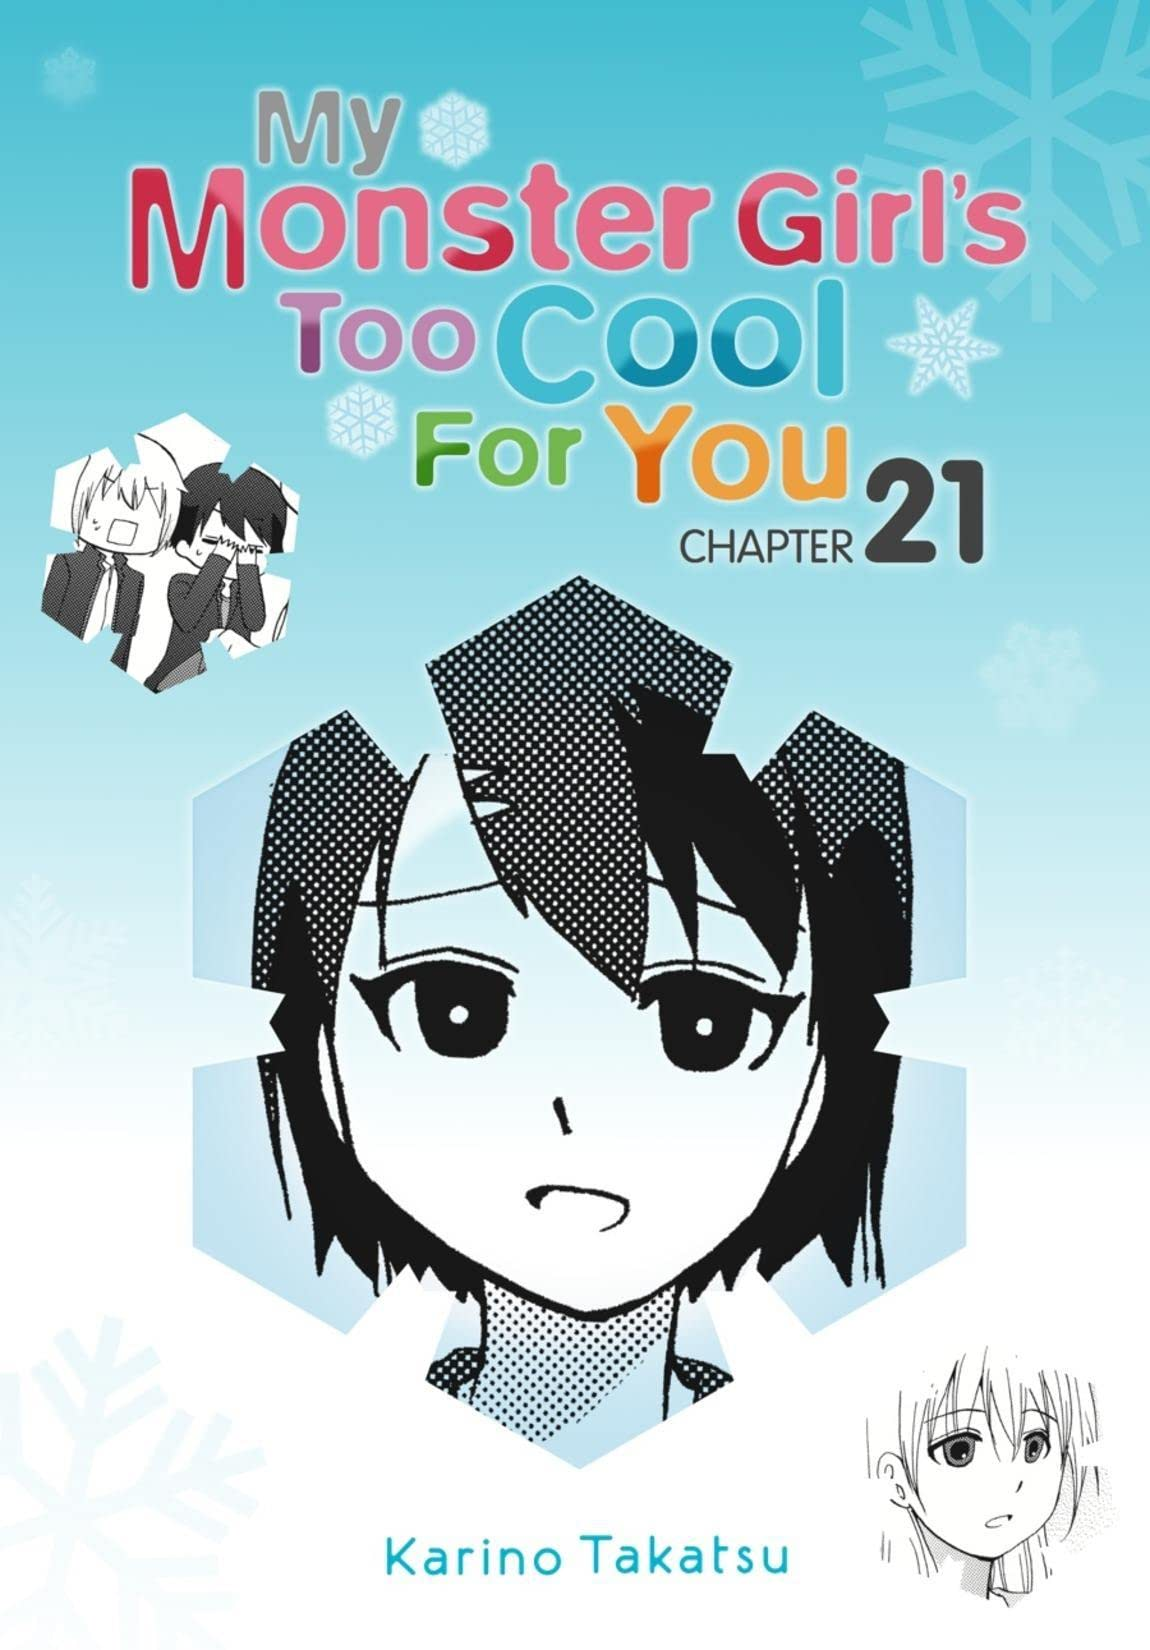 My Monster Girl's Too Cool for You #21